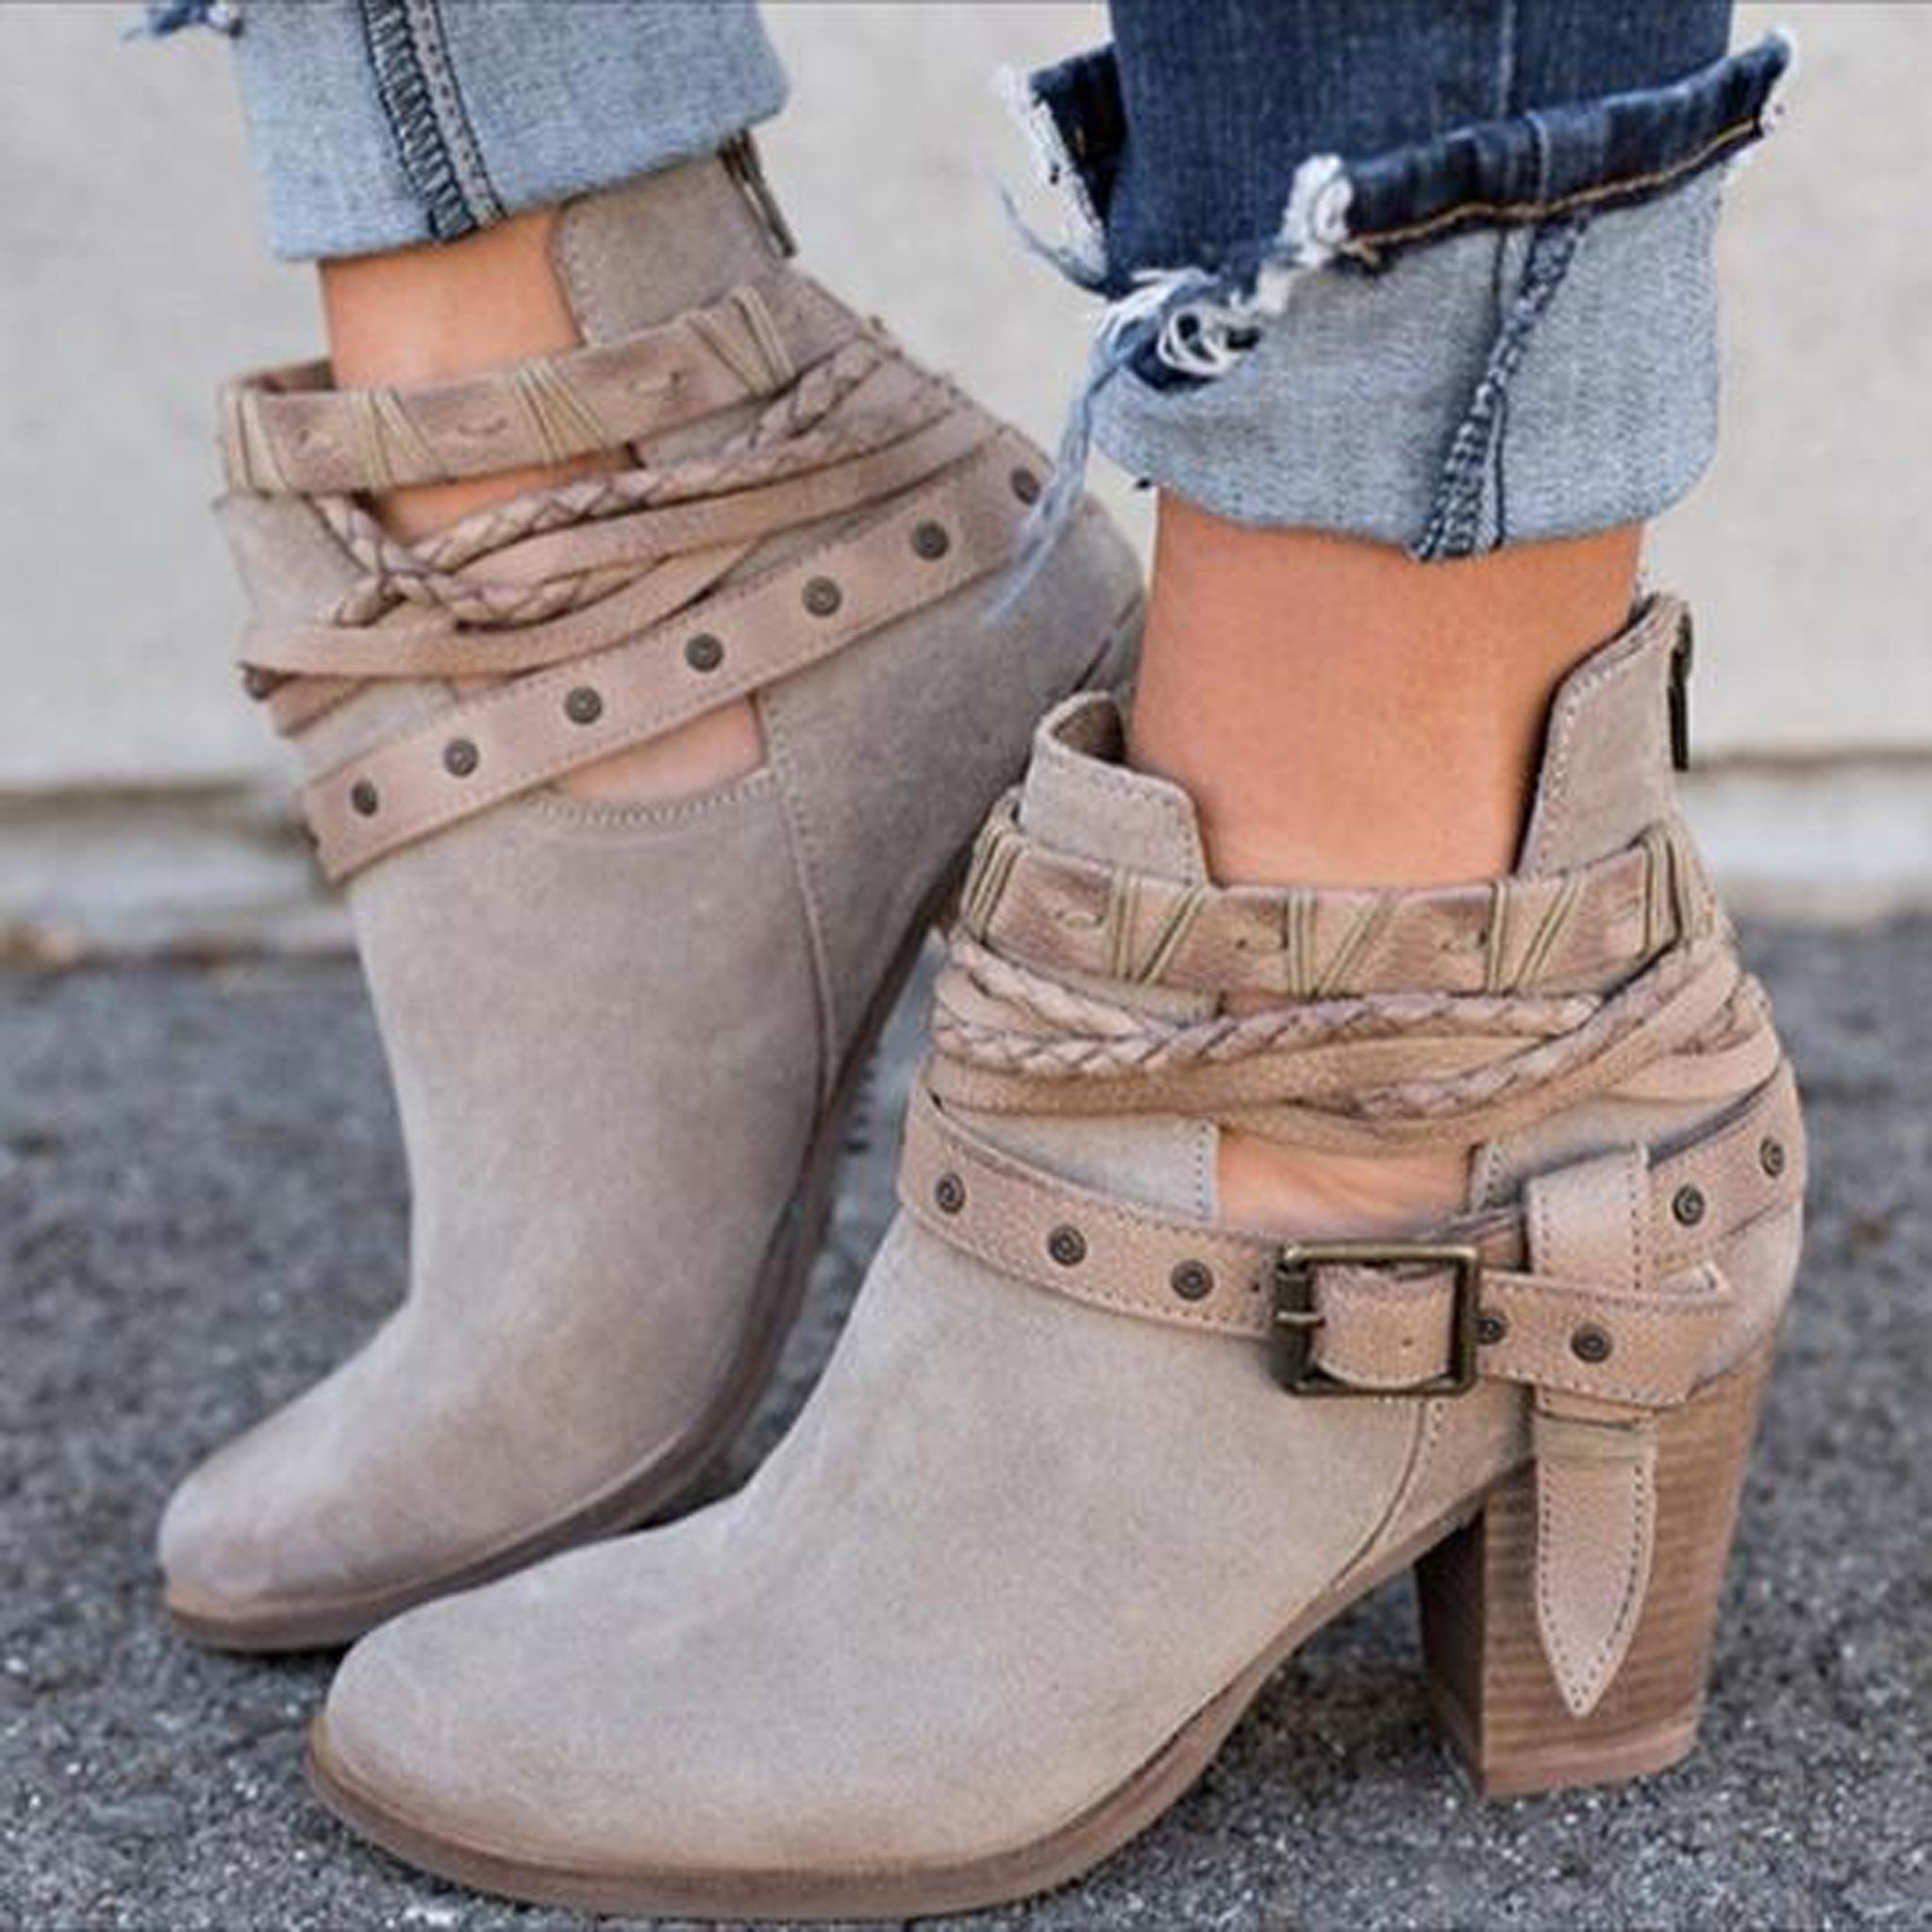 Tale - Fashionable Straps Bootie - Izzabel